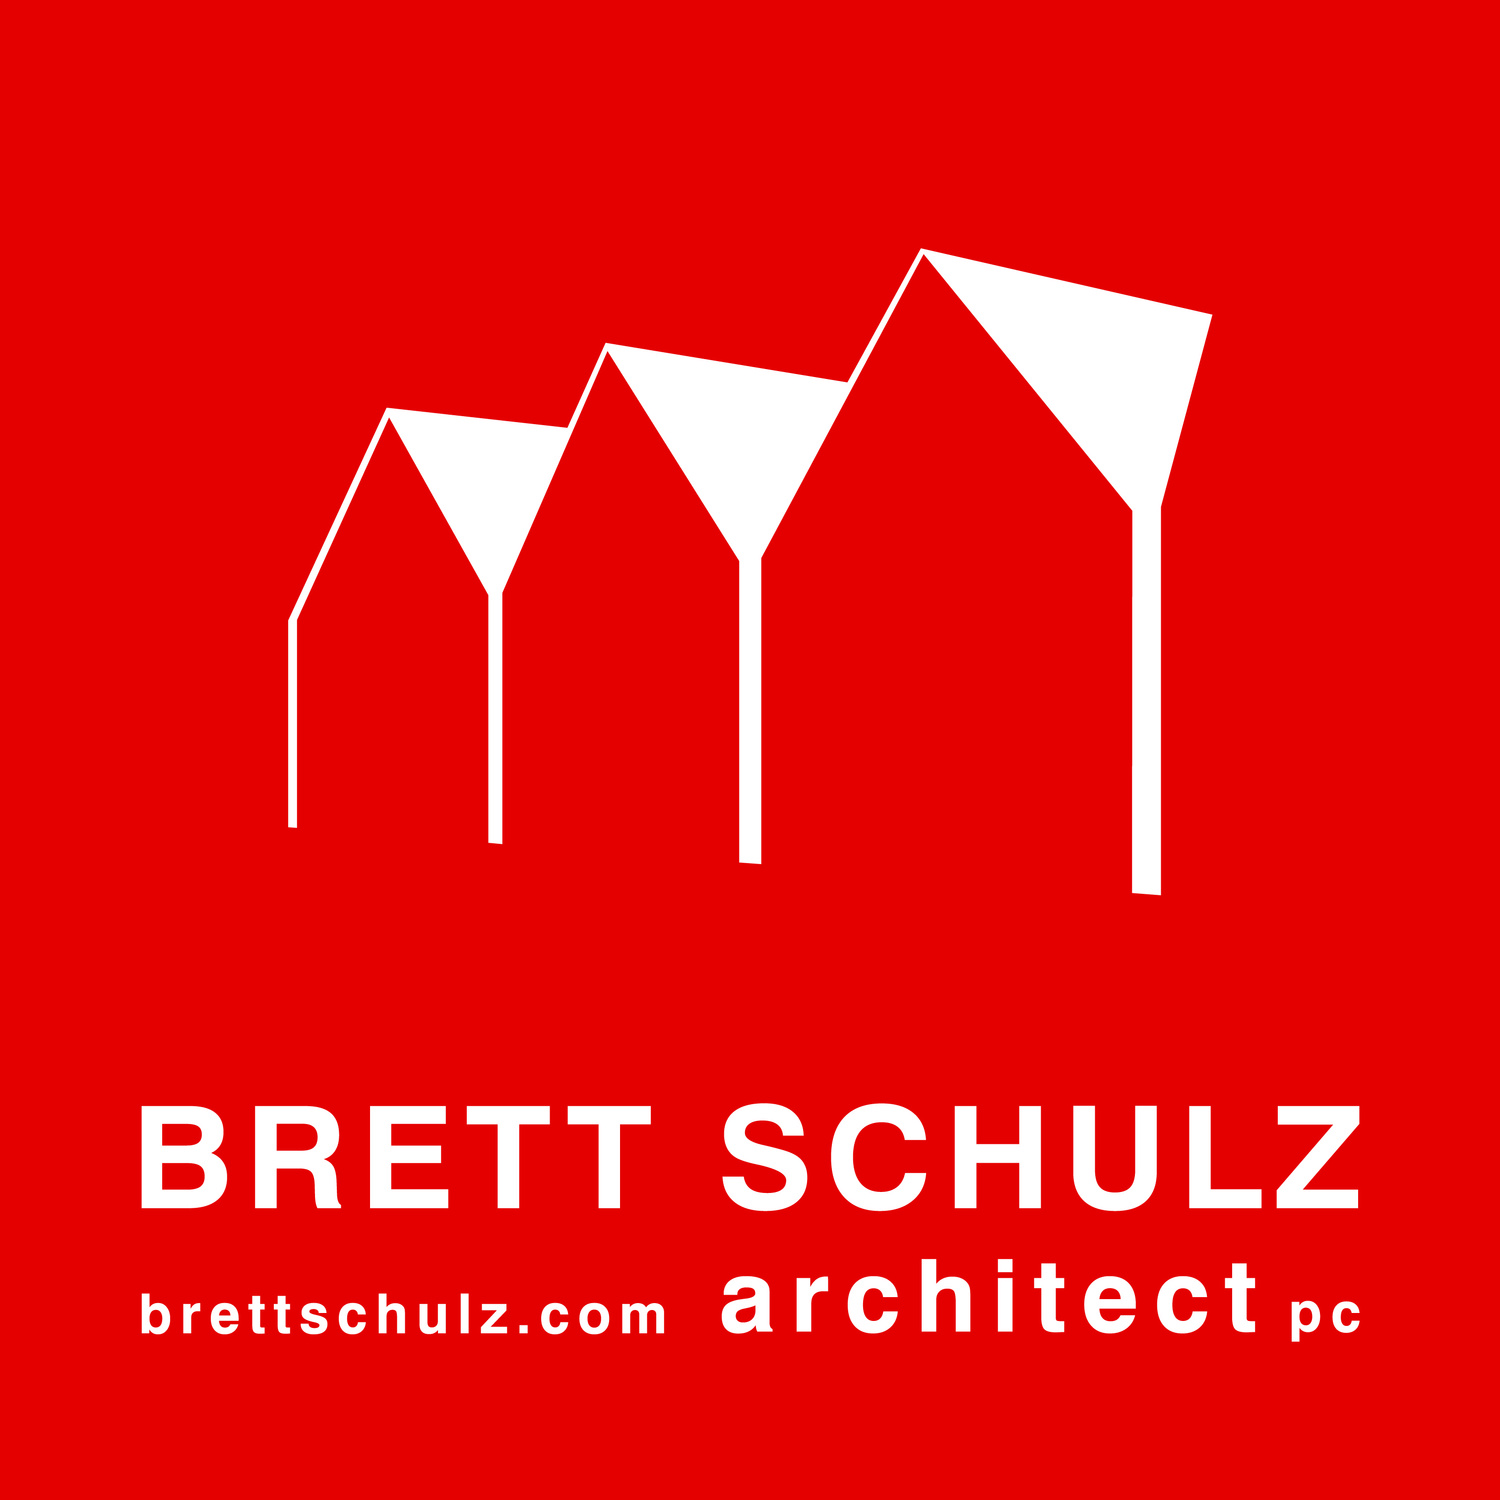 Brett Schulz, Architect PC